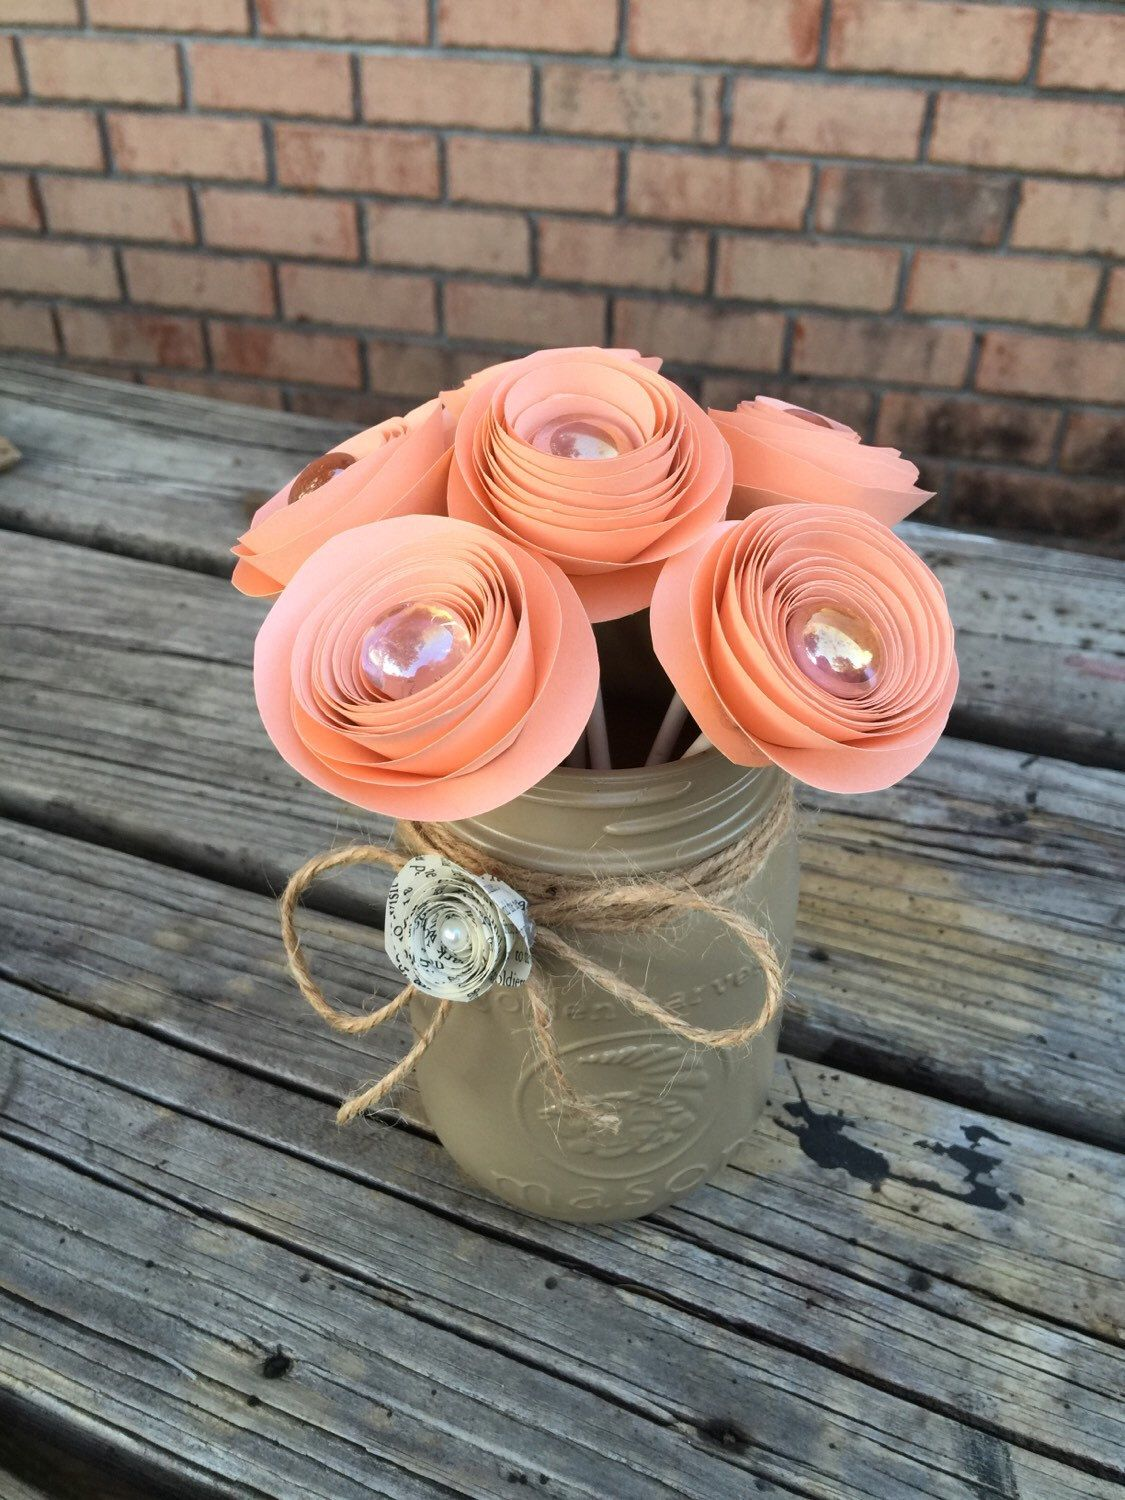 paper flower mason jar arrangement centerpiece peach tan by thecheerfuldreamer on etsy httpswwwetsycomlisting269905731paper flower mason jar